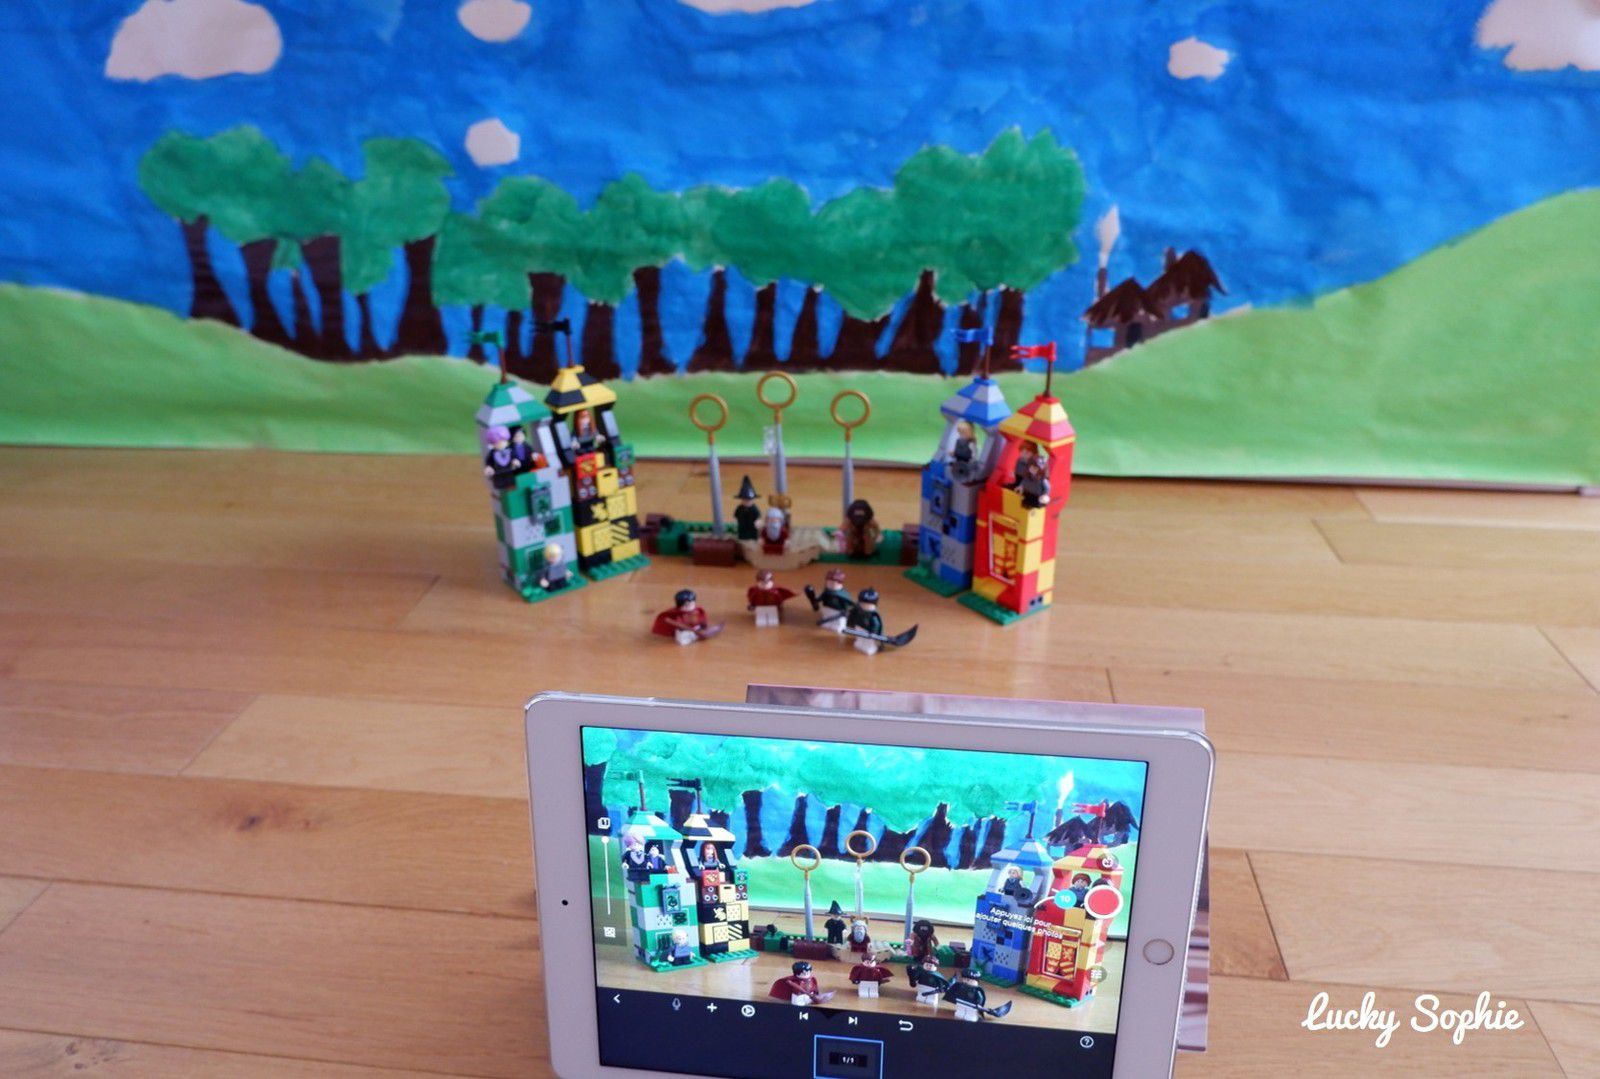 Attention tournage en cours ! Les films Harry Potter revus en stop motion Lego !